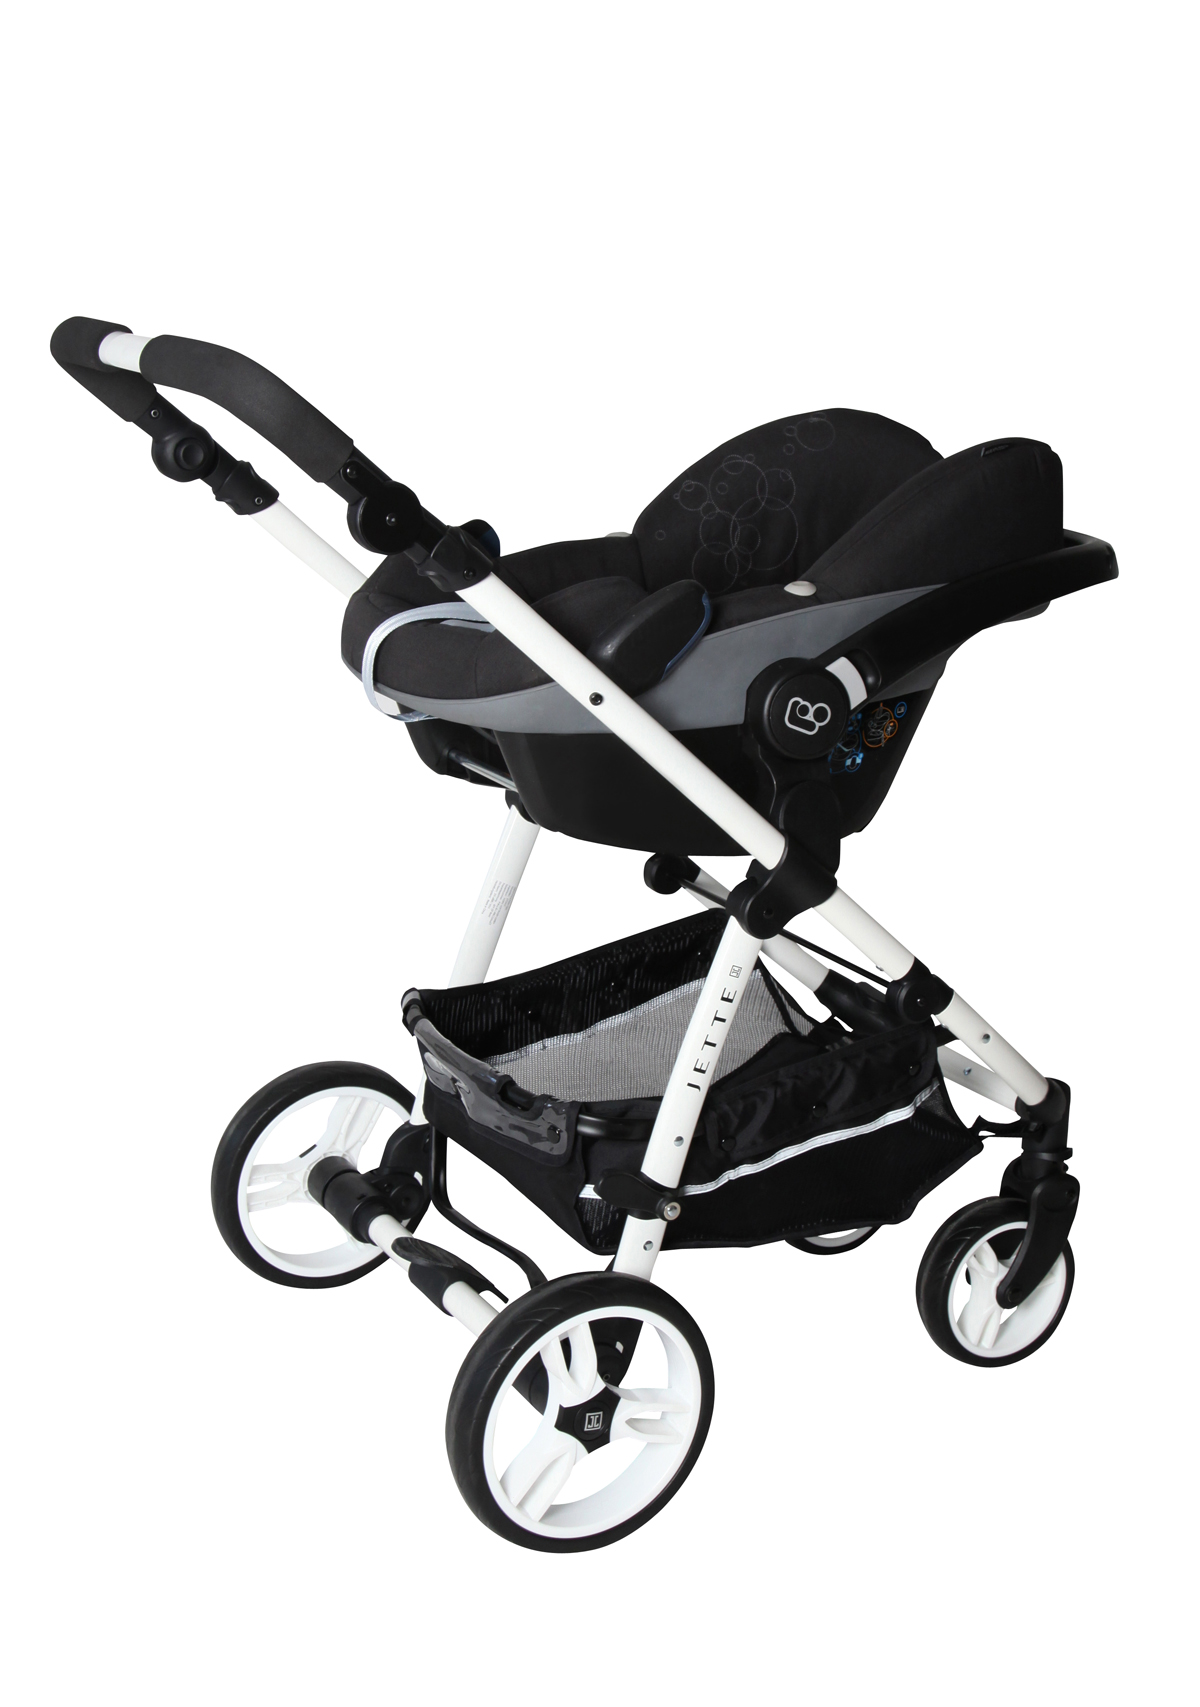 jeff mit babyschale jette kinderwagen. Black Bedroom Furniture Sets. Home Design Ideas